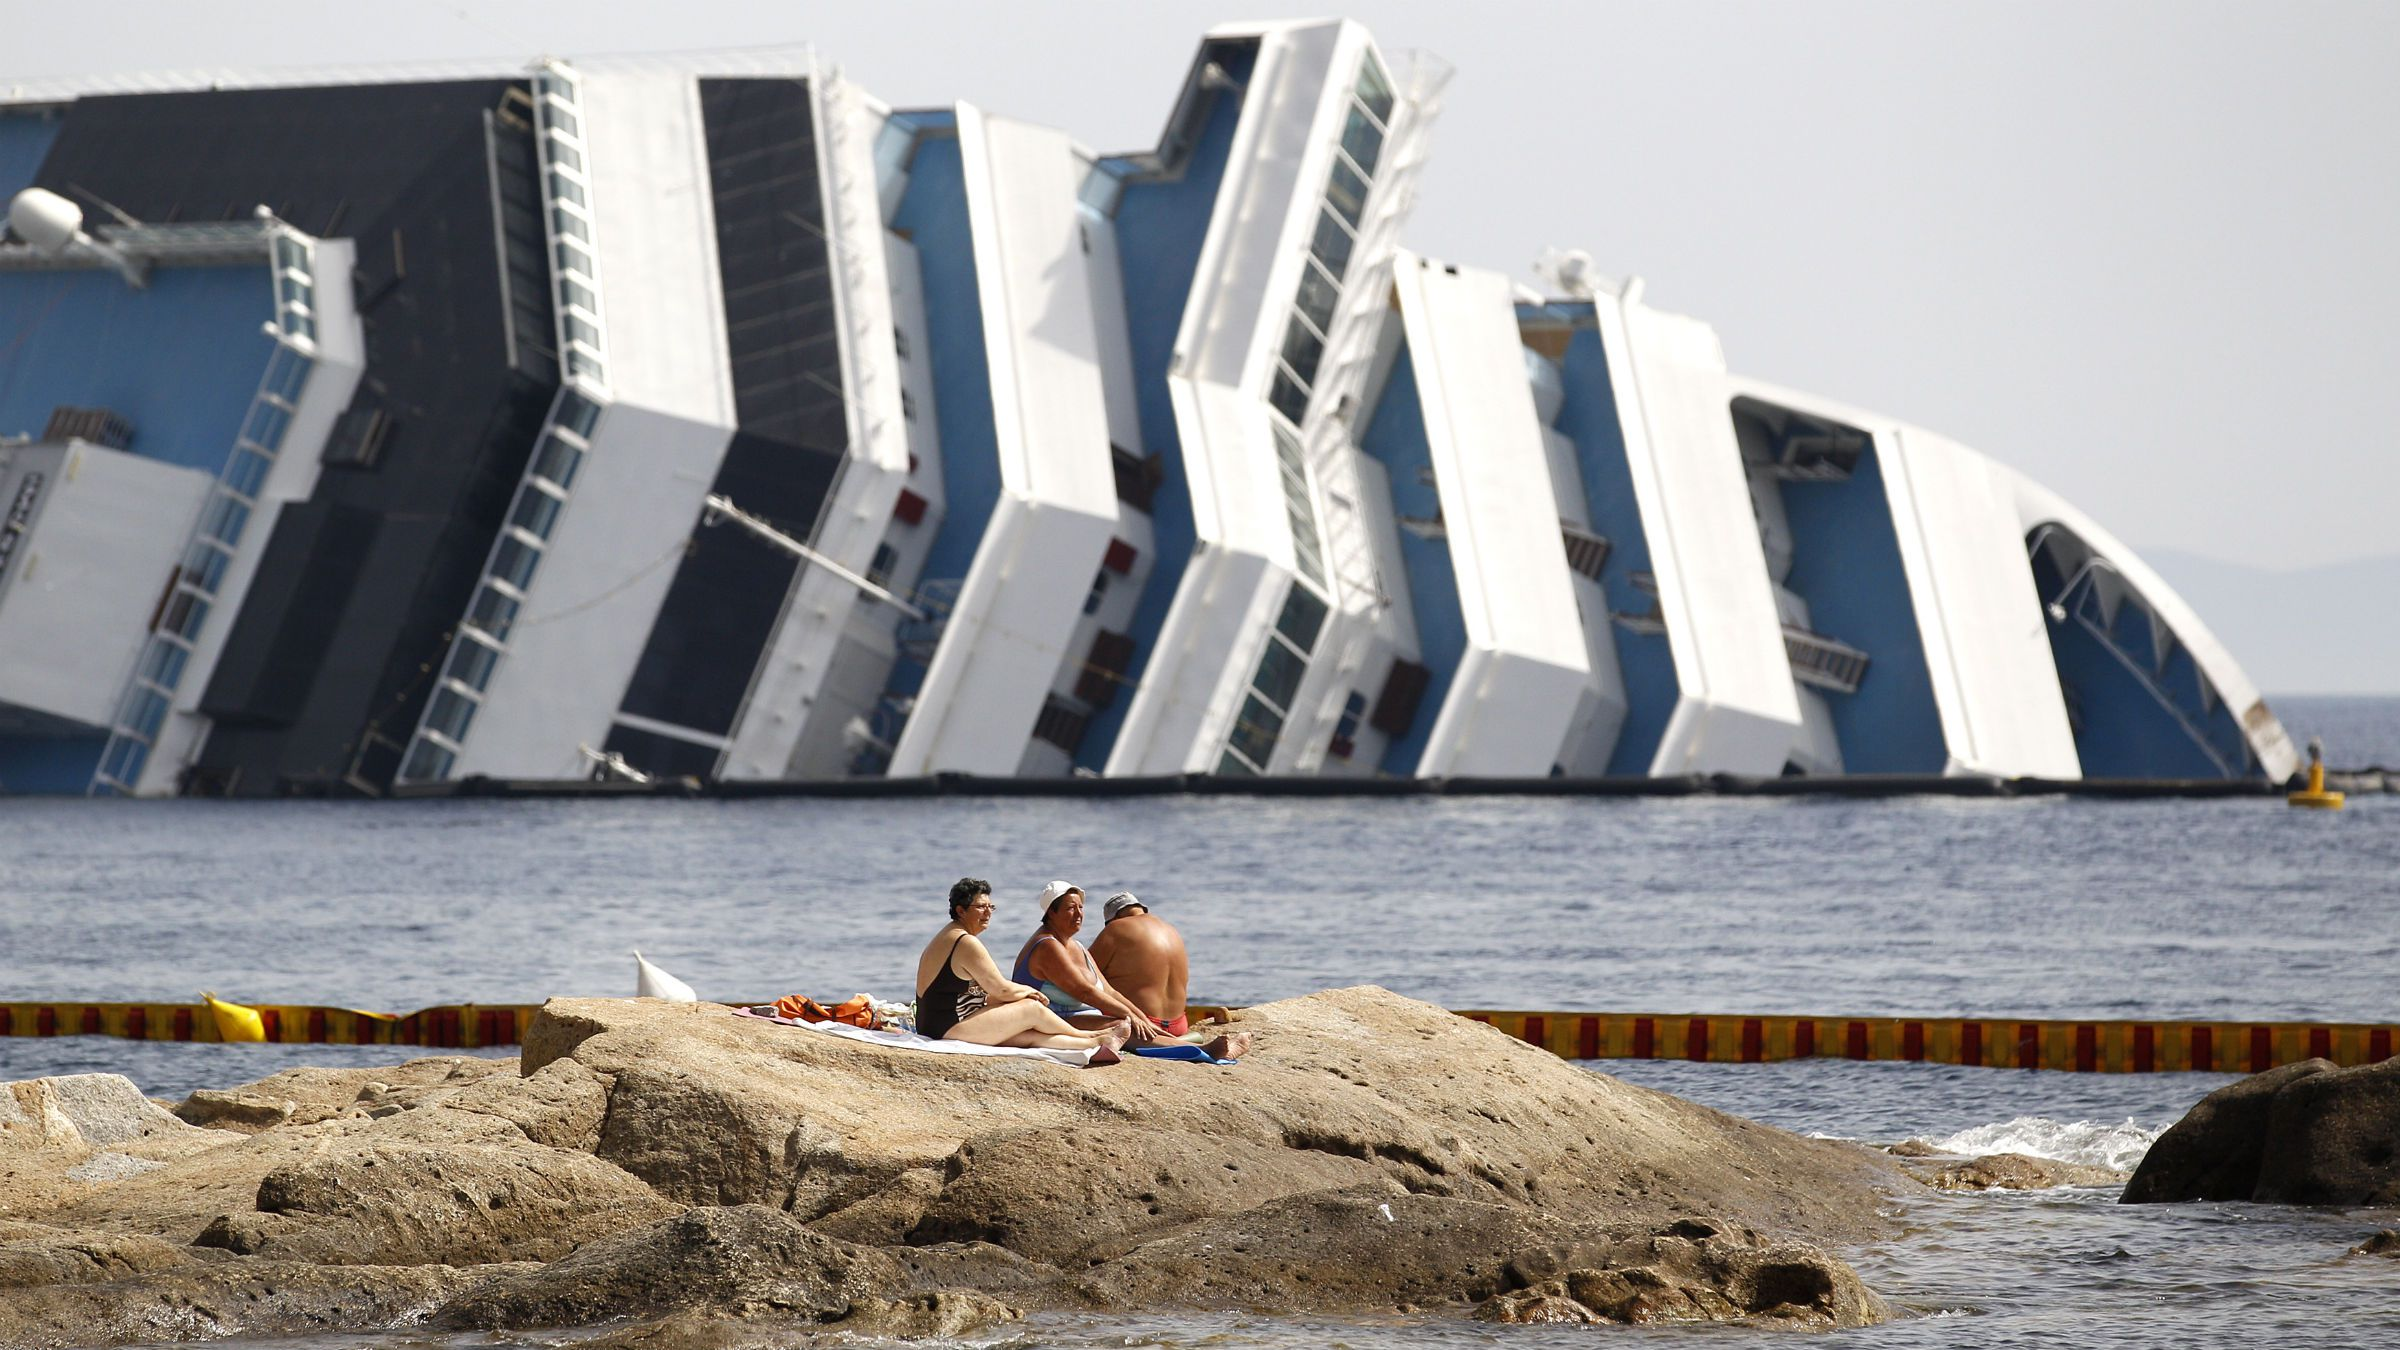 Vacationers bask in front of the wreckage of capsized cruise liner Costa Concordia near the harbour of Giglio Porto June 20, 2012. The salvage operation to move the capsized Costa Concordia away from the island of Giglio, where it ran aground three months ago, will begin in June. REUTERS/Max Rossi